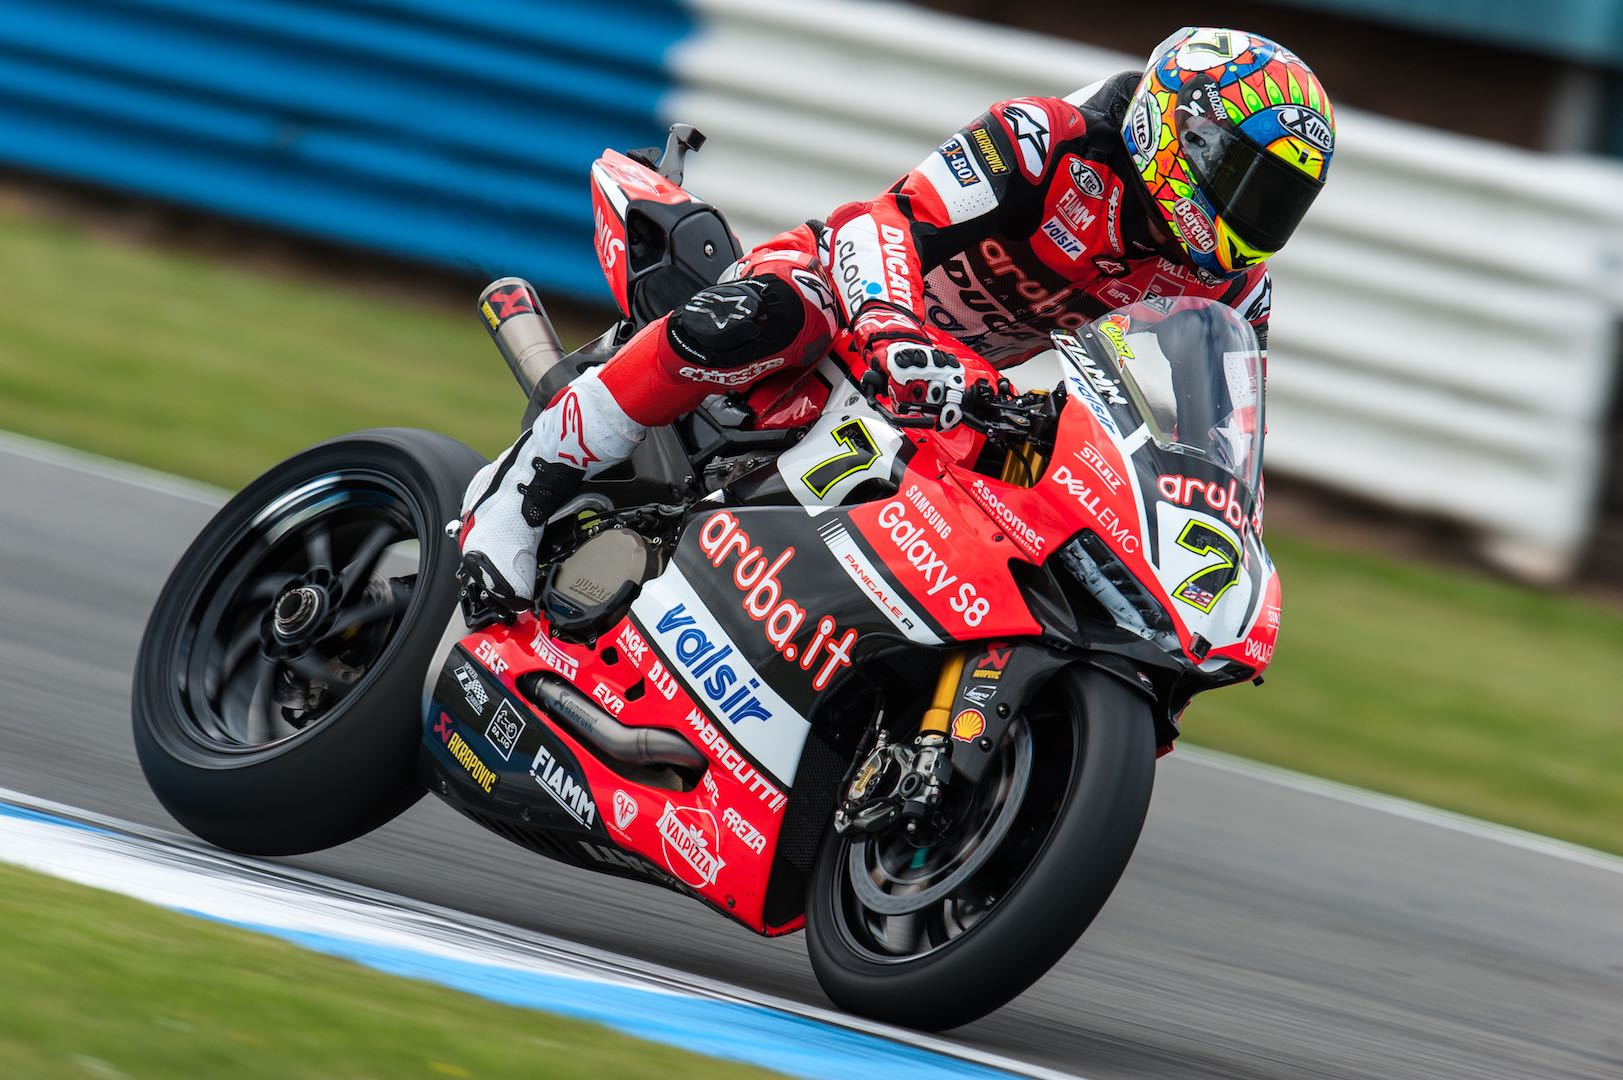 2017 Misano World Superbike Preview: Ducati's Chaz Davies